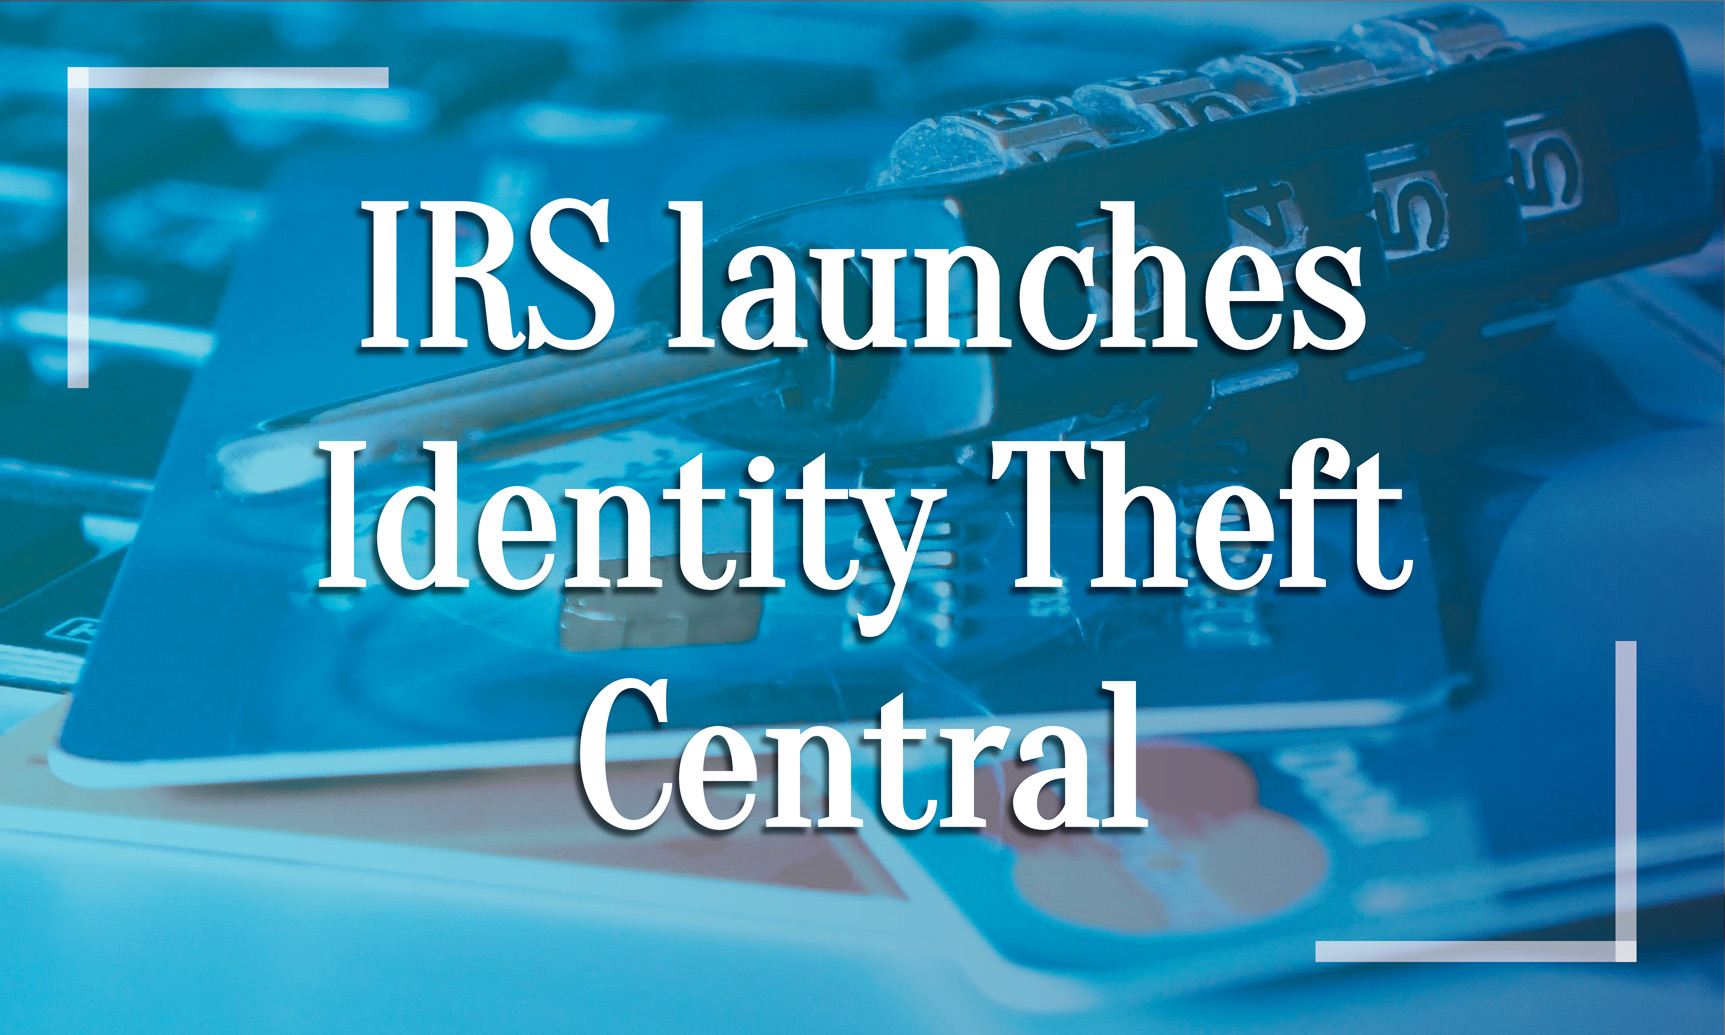 IRS Launches Identify Theft Central